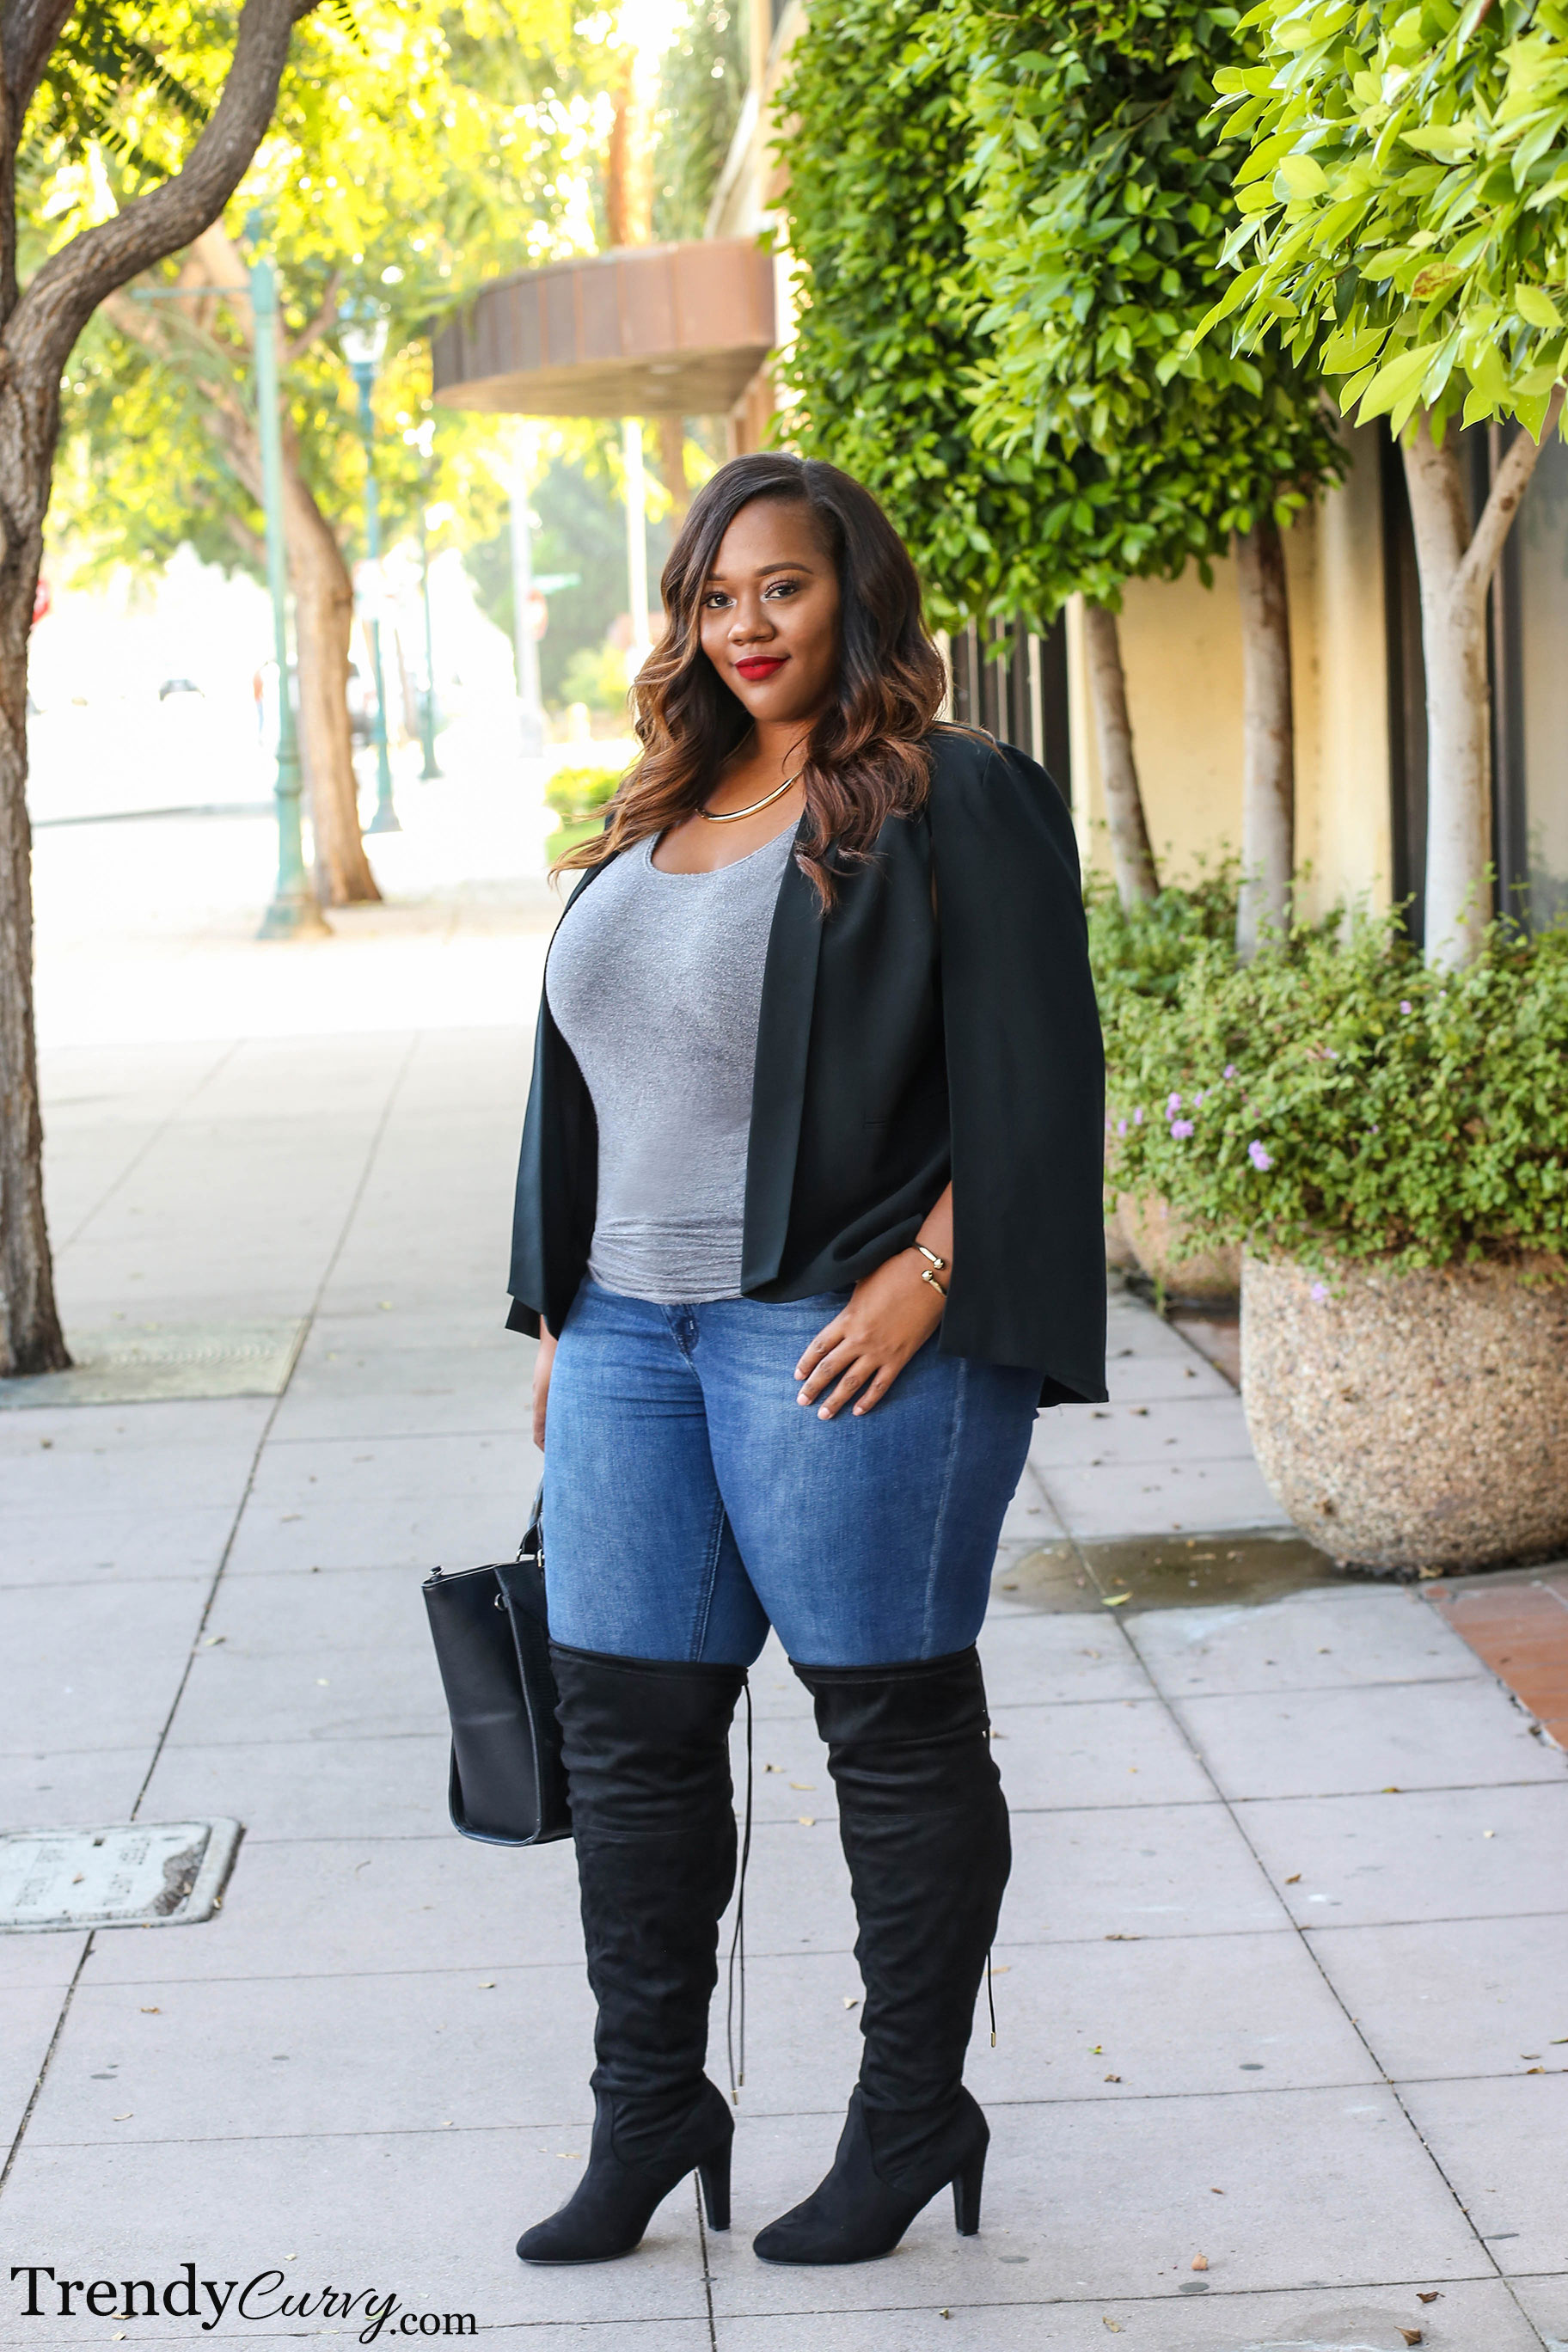 74978bf84e4 I don t know about you but I have been on the hunt for over-the-knee boots  for quite some time. I